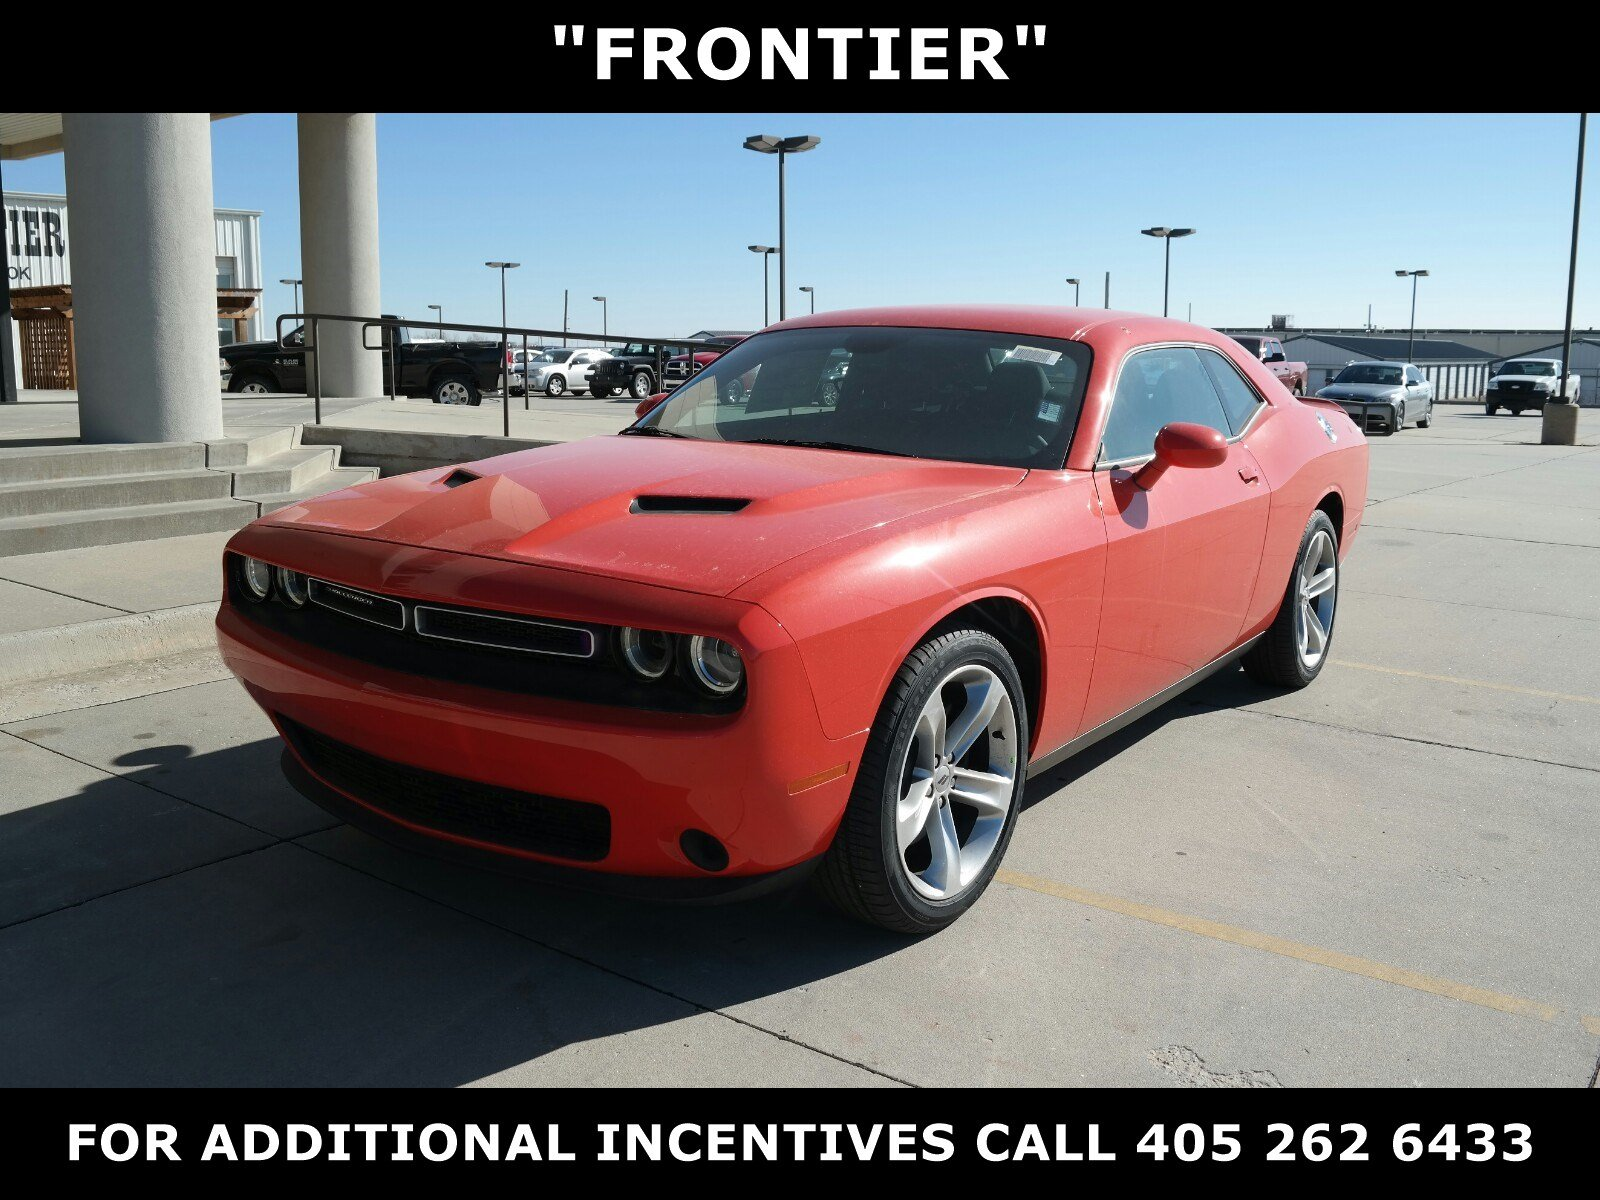 jerry ulm inventory in coupe sxt new challenger dodge tampa rwd